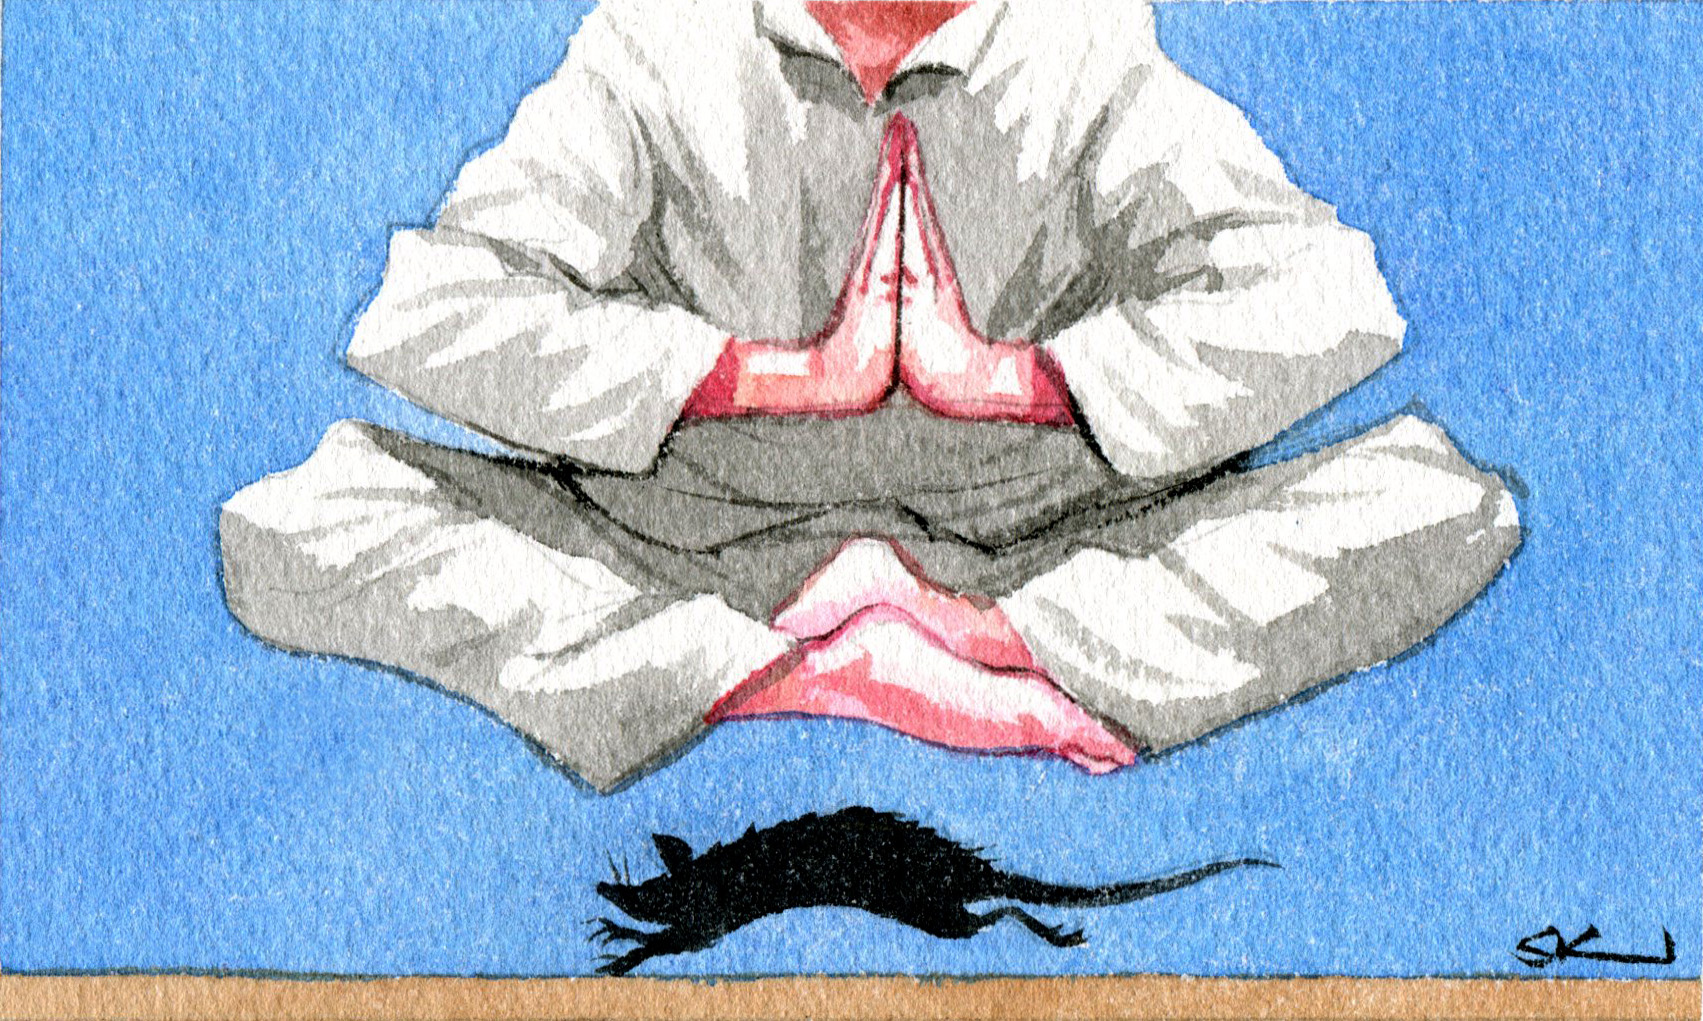 Person in lotus position levitating with a rat running under them. Artwork by Sturt Krygsman